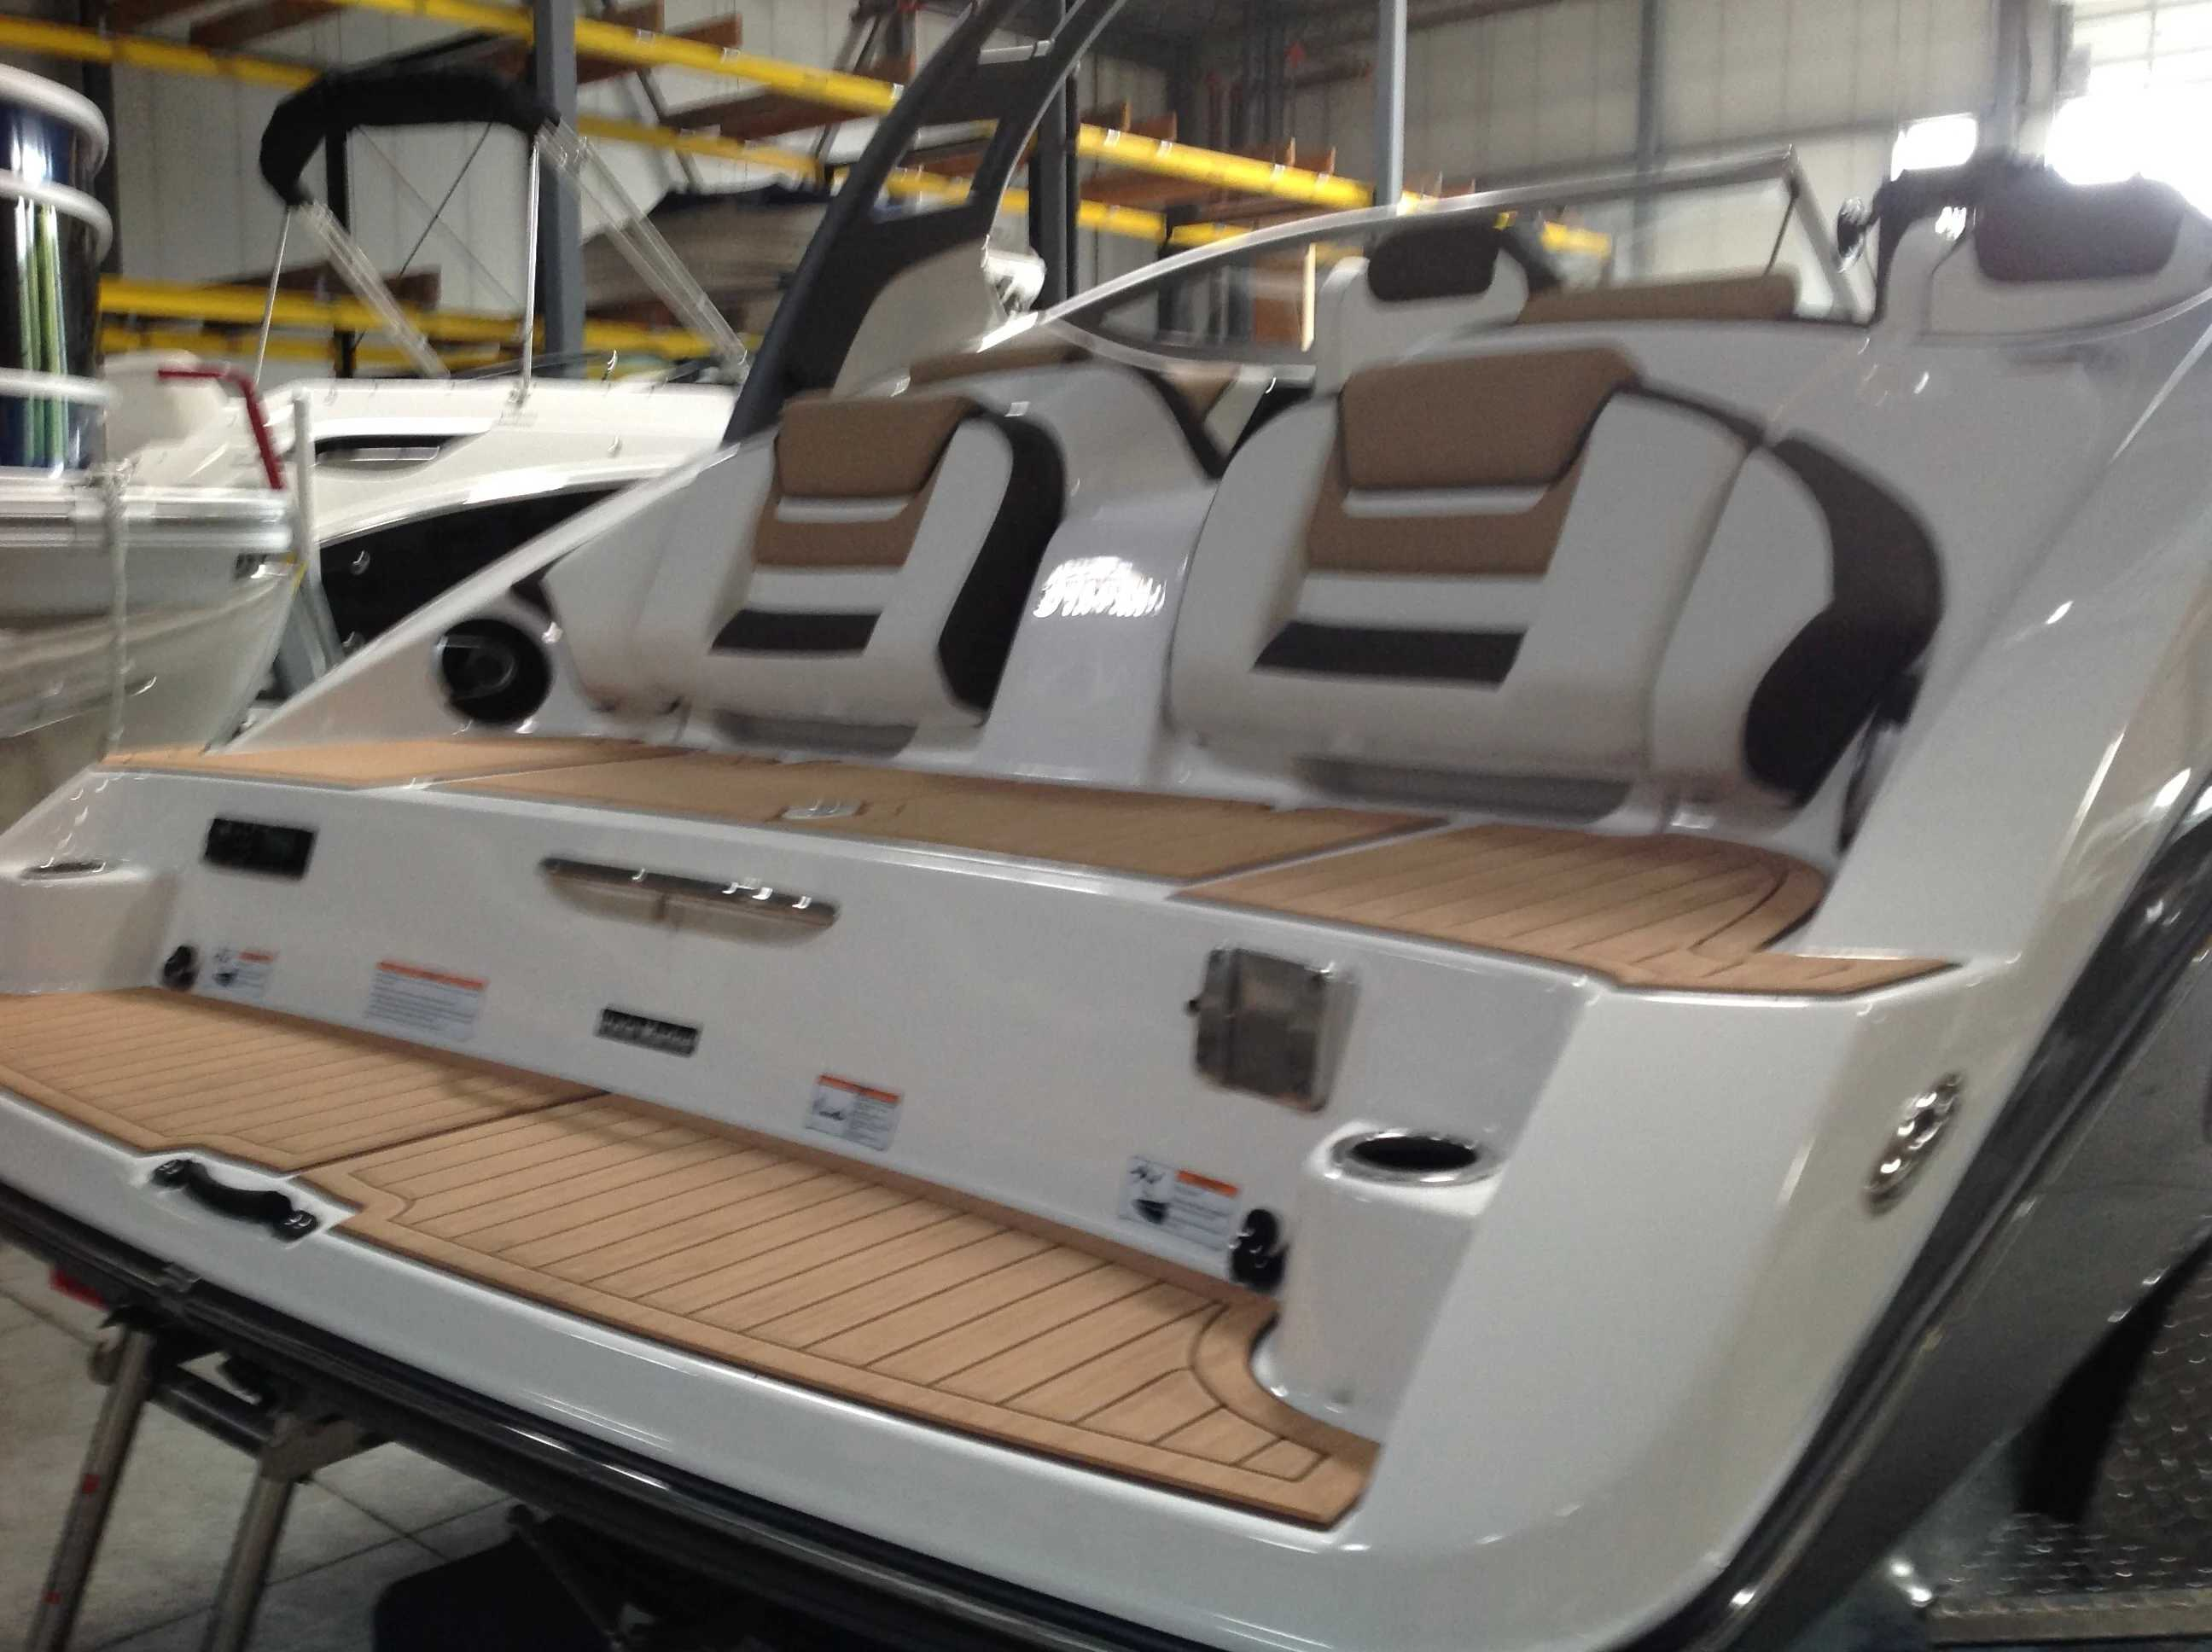 2021 Yamaha boat for sale, model of the boat is 212S & Image # 9 of 10